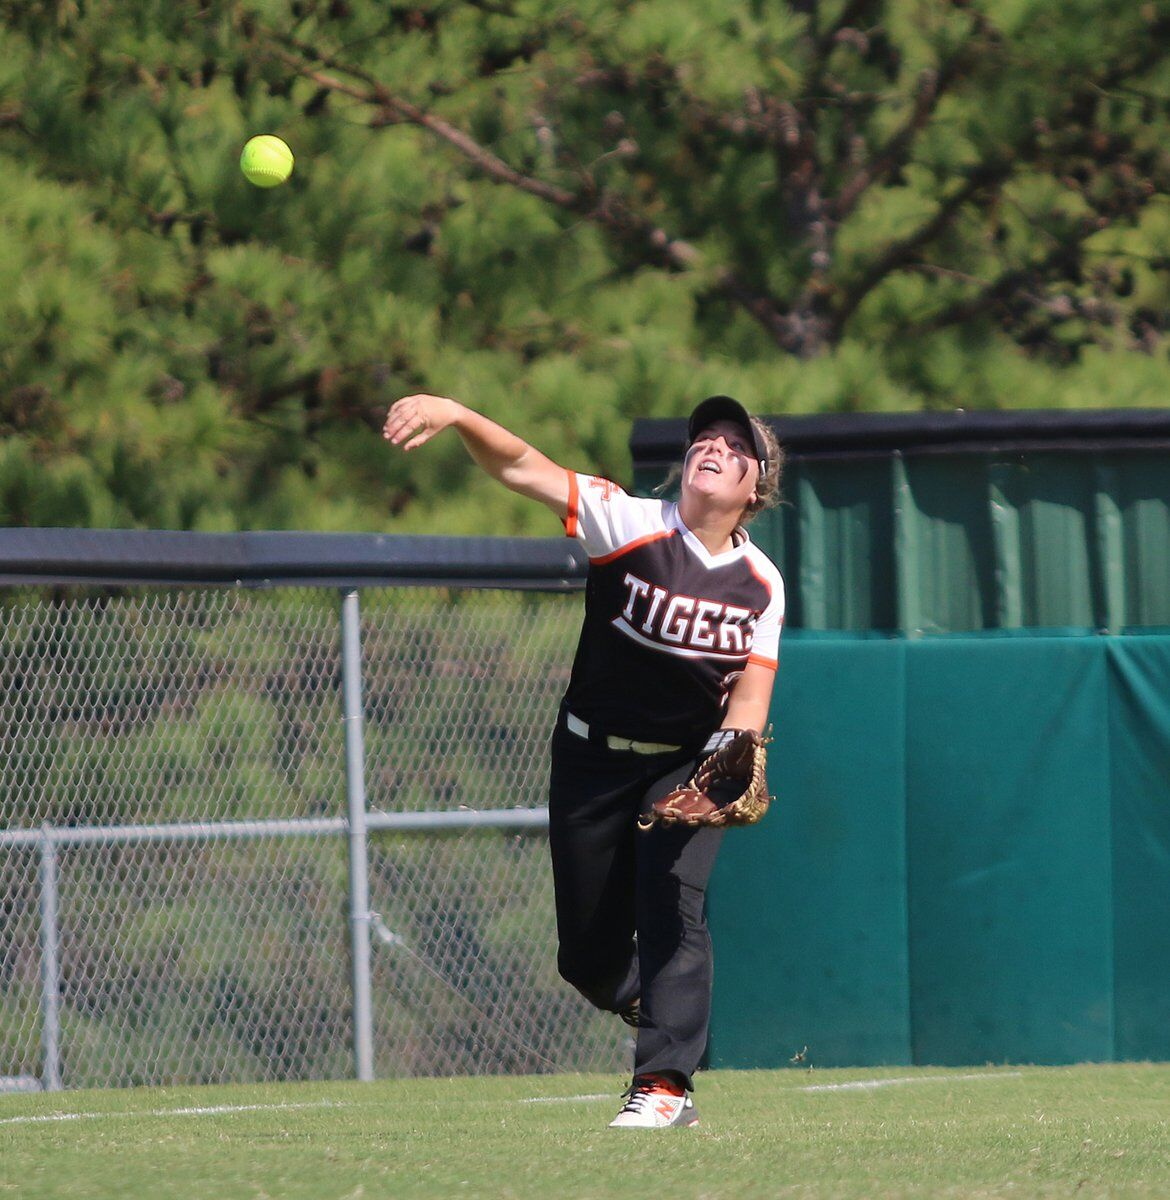 PURE DOMINANCE: Lady Tigers throttle Collinsville to claim district crown